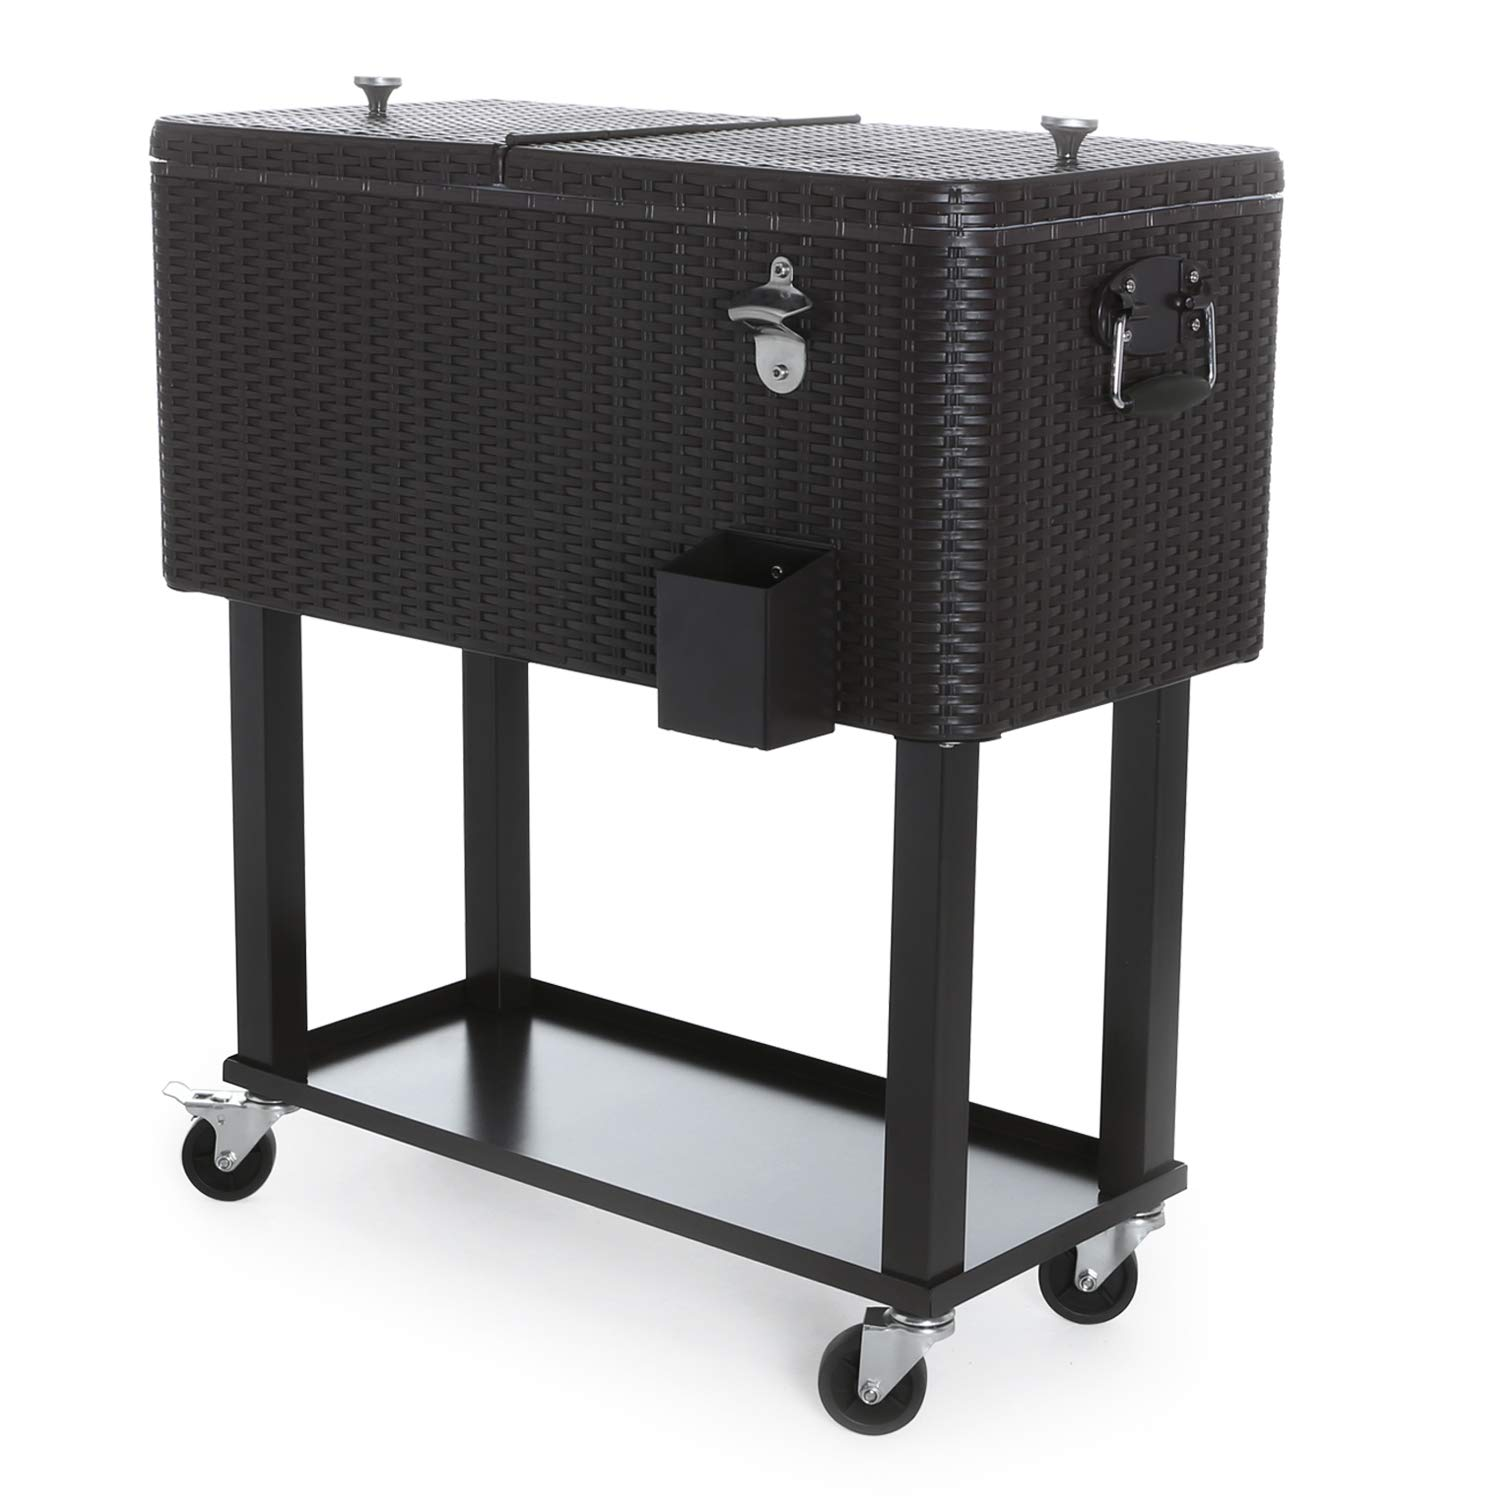 CAIDE-STORE with a Free Cover 80 Quart Outdoor Portable Cooler Patio Ice Chest Cooler Cart on Wheel by CAIDE-STORE (Image #2)